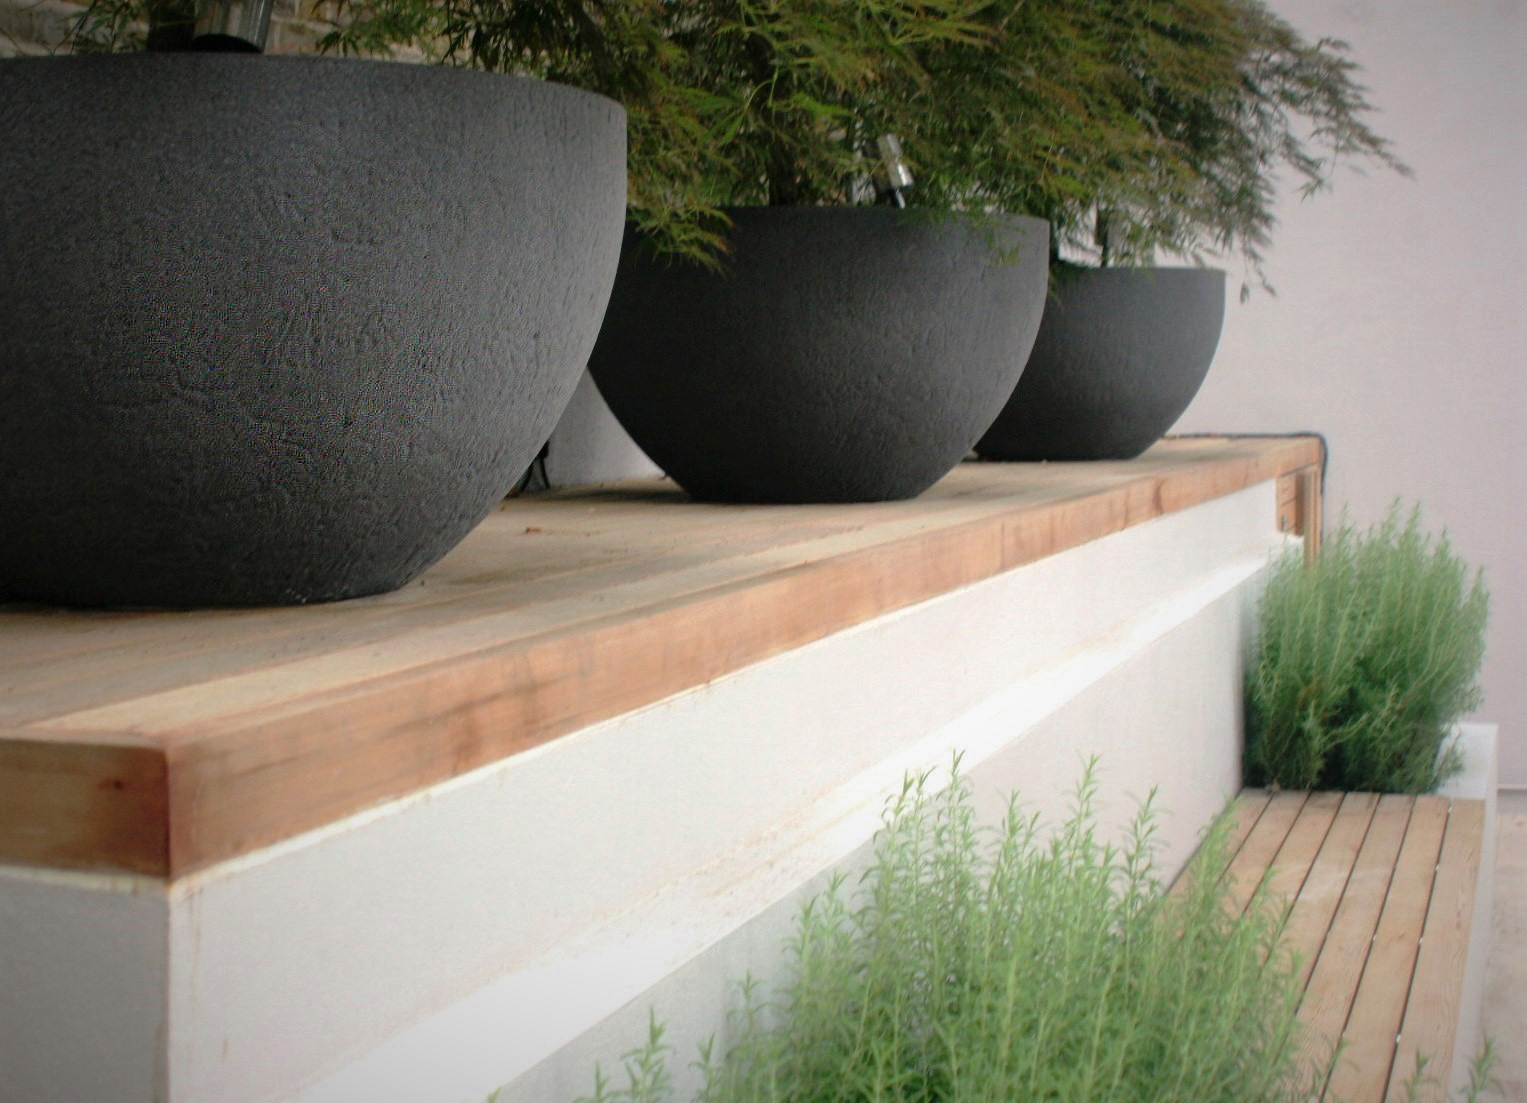 City Retreat Garden London. Three planters with Acers. Rae Wilkinson Garden and Landscape Design - Garden Designer Sussex, Surrey, London, South-East England